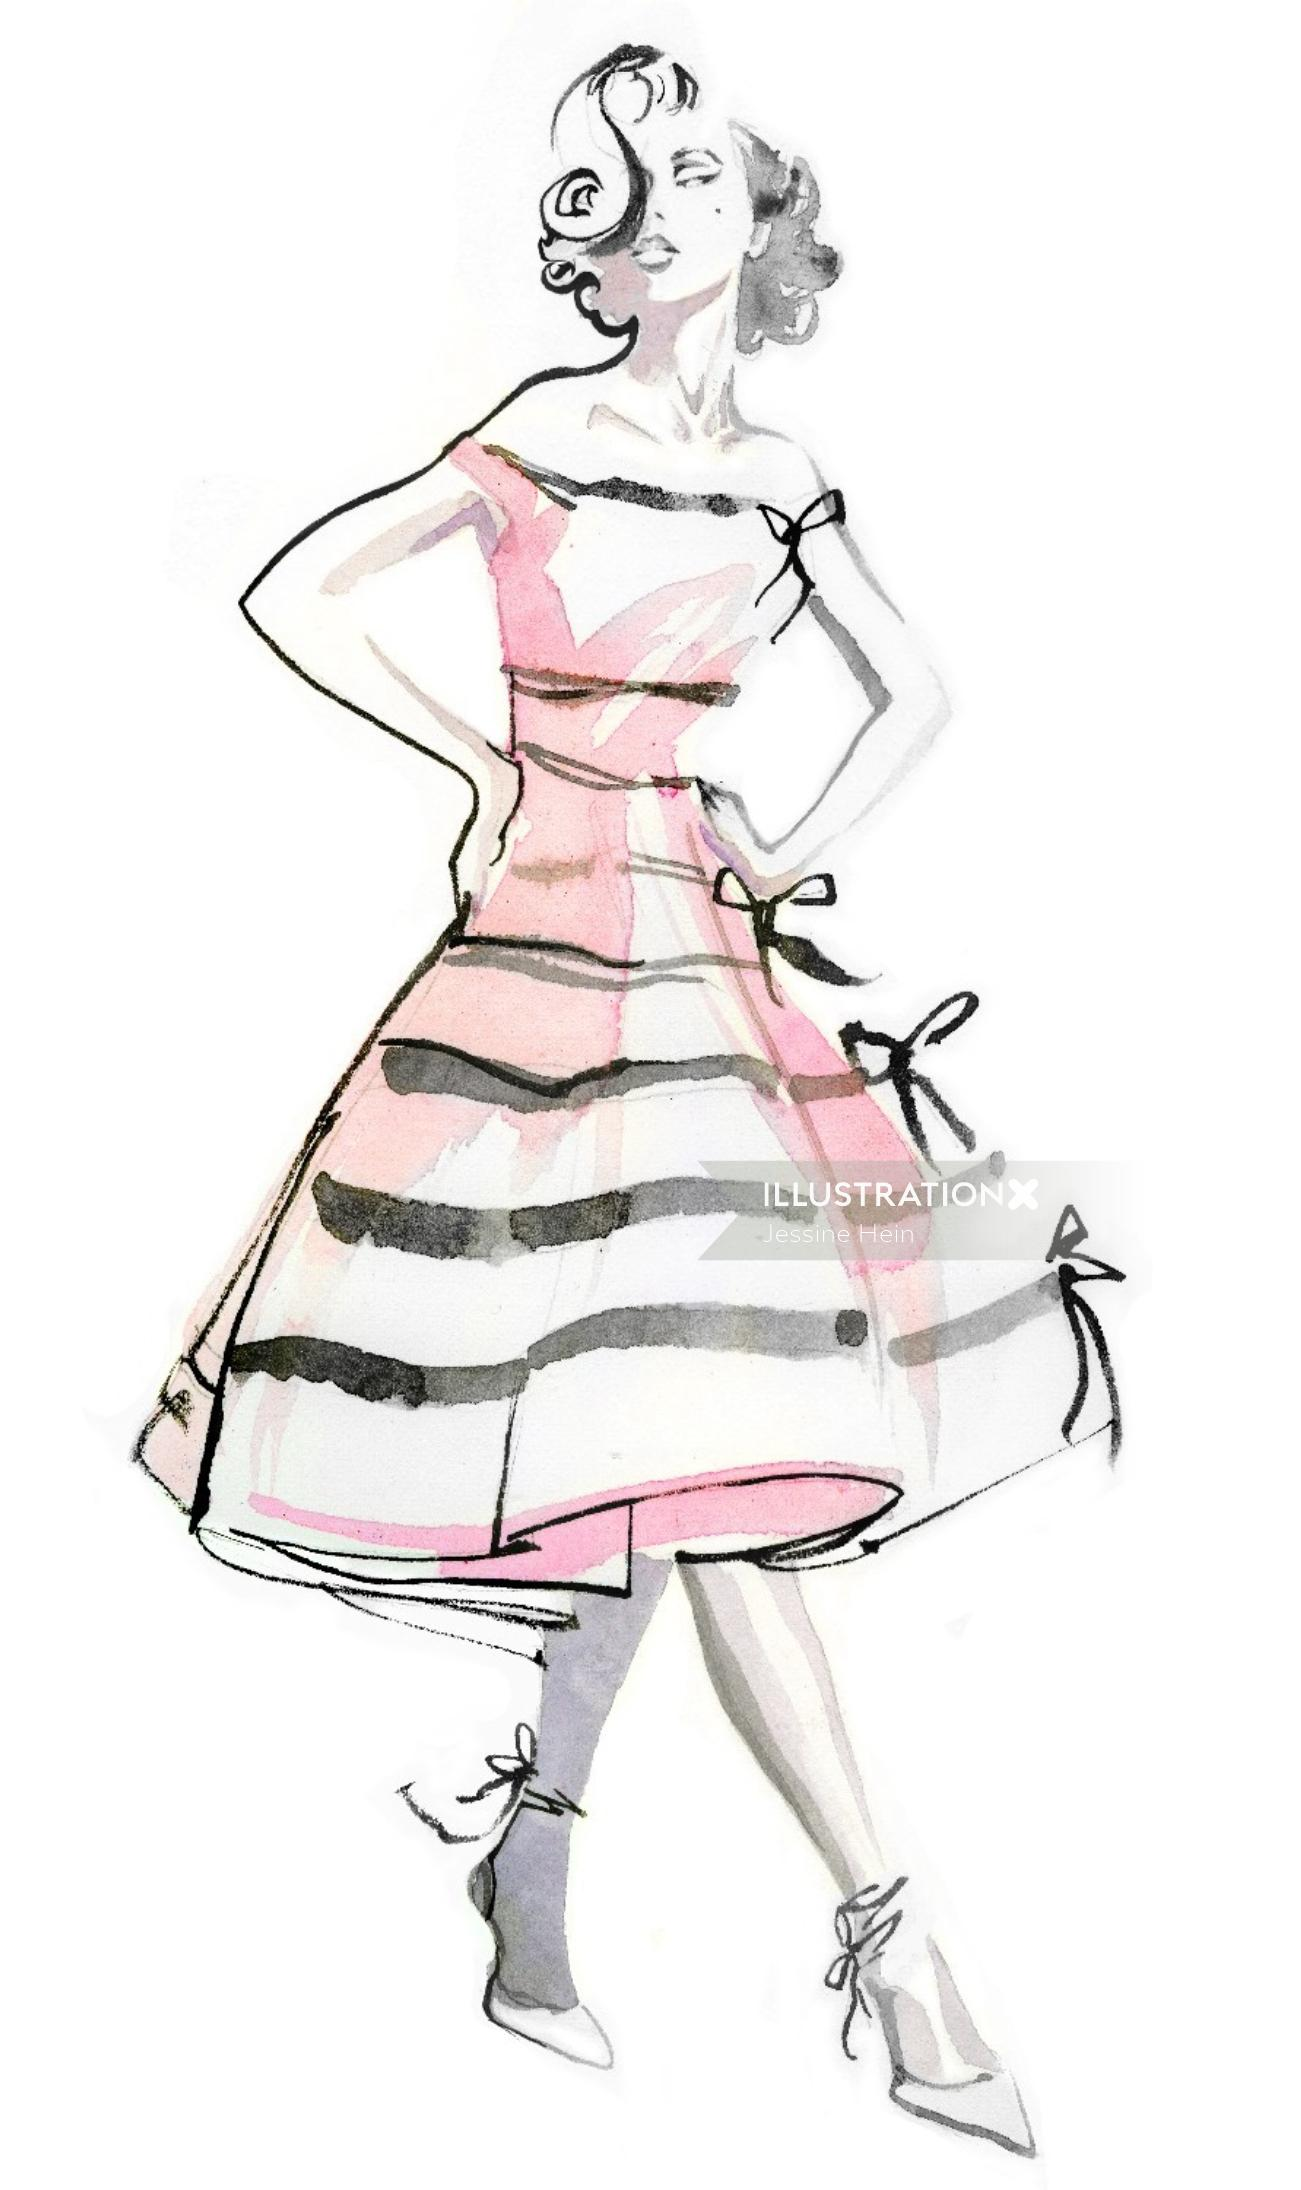 Fashion watercolor painting illustration of a woman